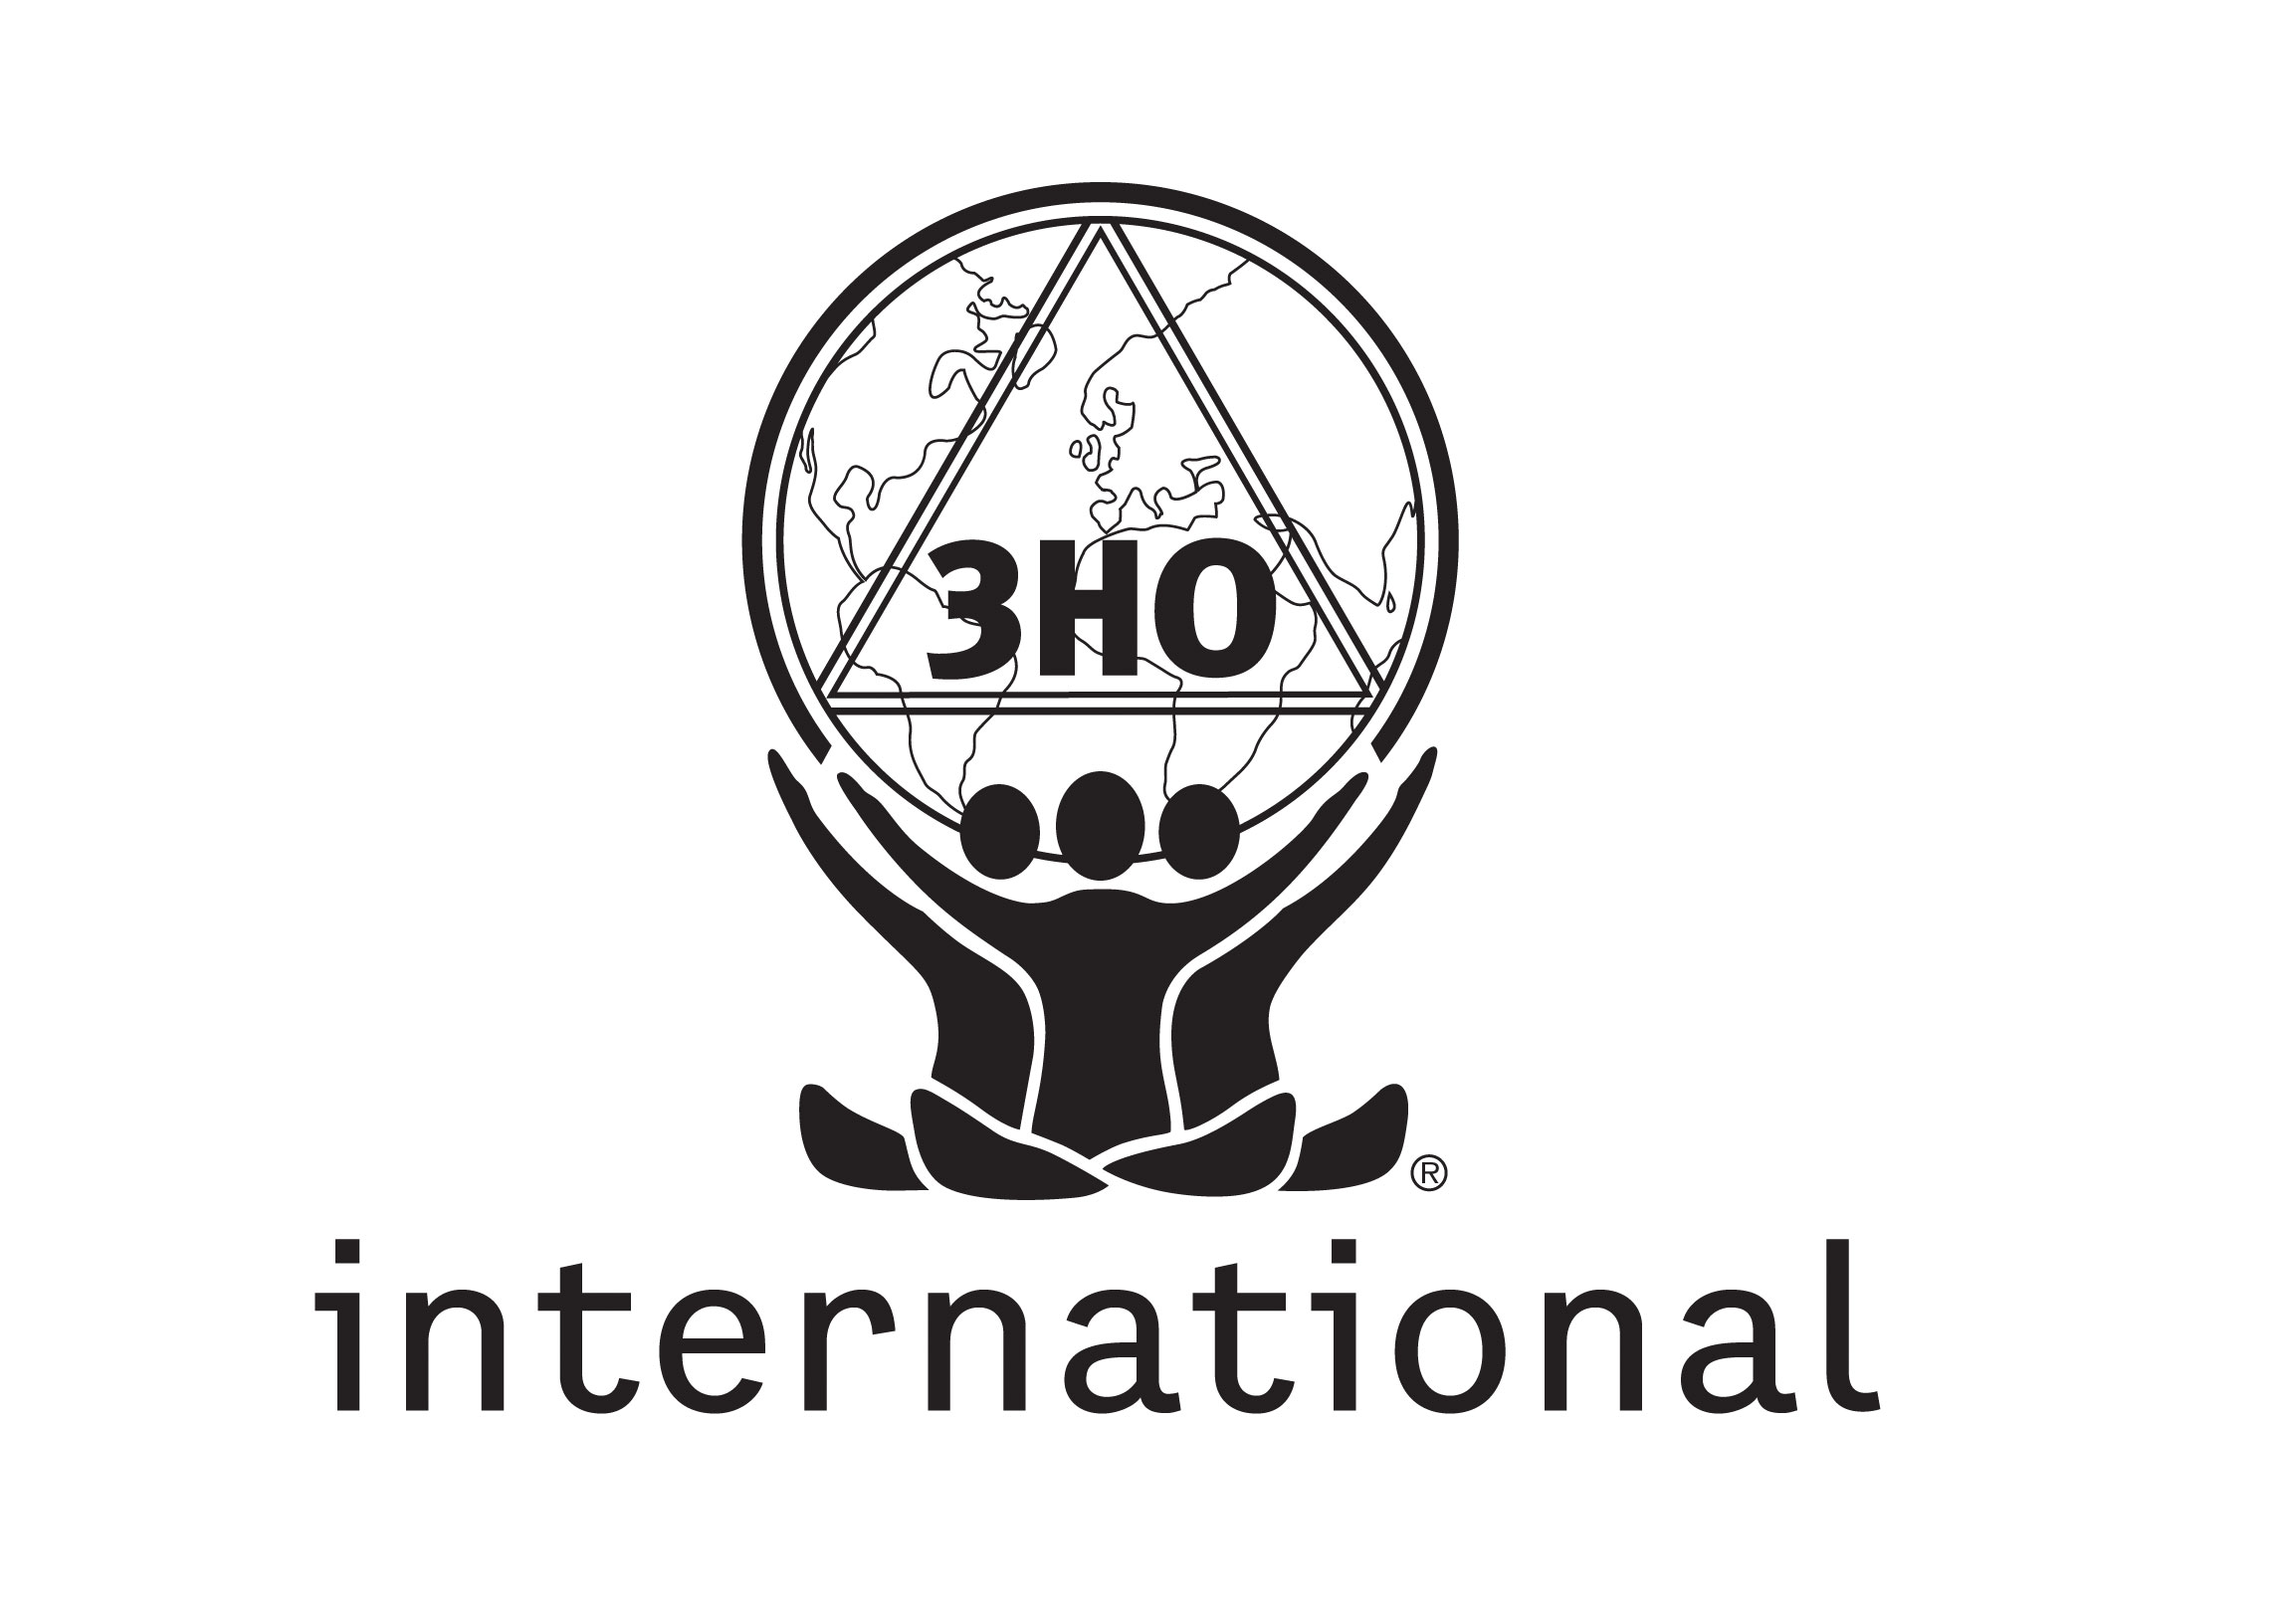 3HO-International---Black.jpg